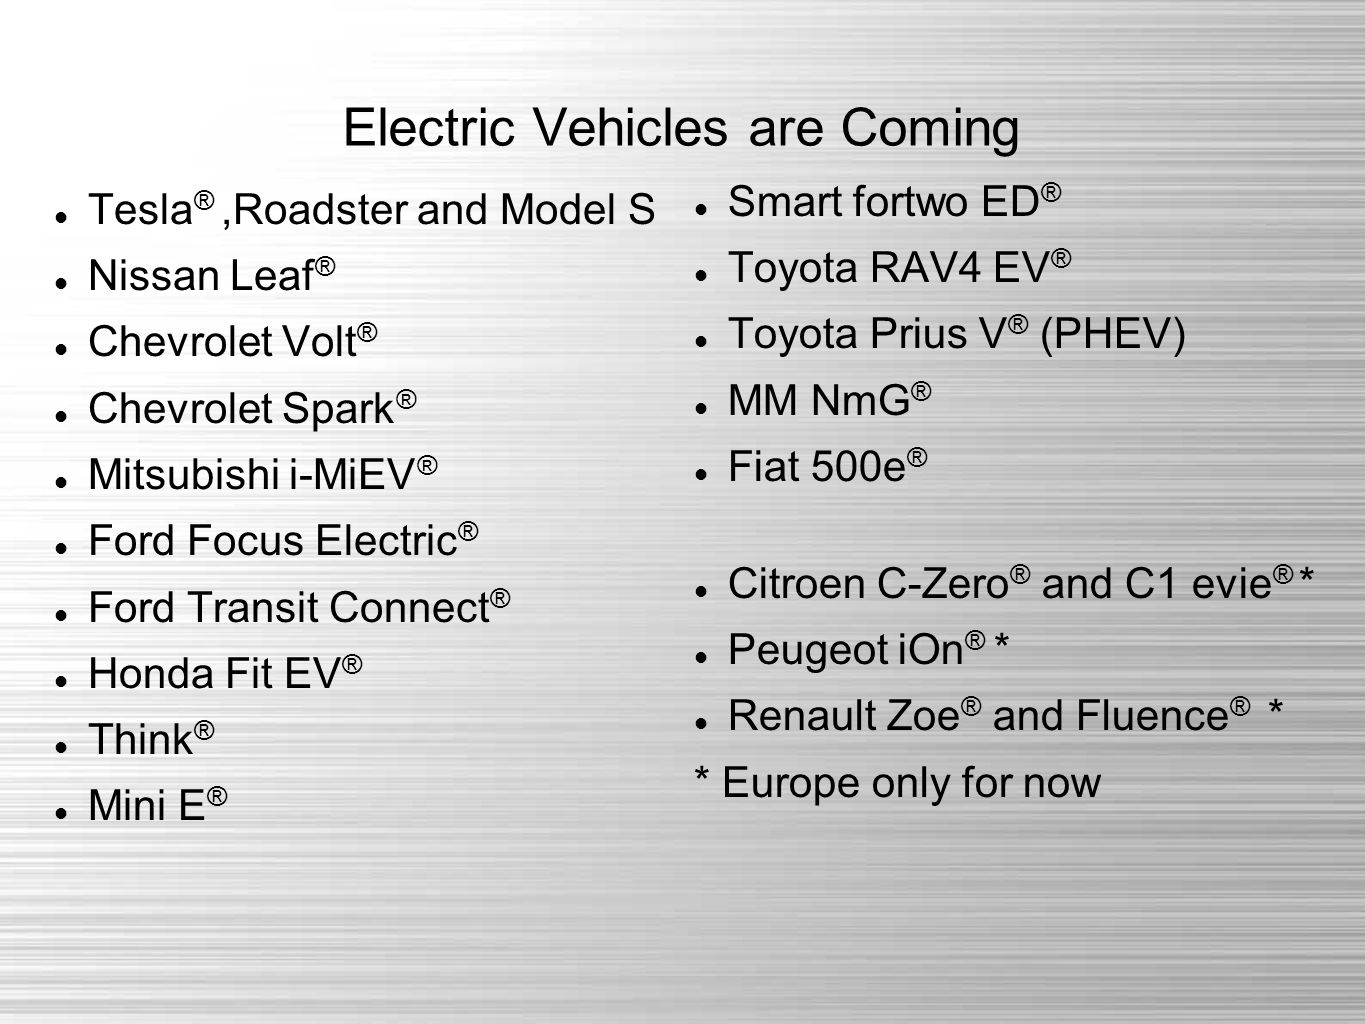 Electric Vehicles are Coming Tesla ®,Roadster and Model S Nissan Leaf ® Chevrolet Volt ® Chevrolet Spark ® Mitsubishi i-MiEV ® Ford Focus Electric ® Ford Transit Connect ® Honda Fit EV ® Think ® Mini E ® Smart fortwo ED ® Toyota RAV4 EV ® Toyota Prius V ® (PHEV) MM NmG ® Fiat 500e ® Citroen C-Zero ® and C1 evie ® * Peugeot iOn ® * Renault Zoe ® and Fluence ® * * Europe only for now